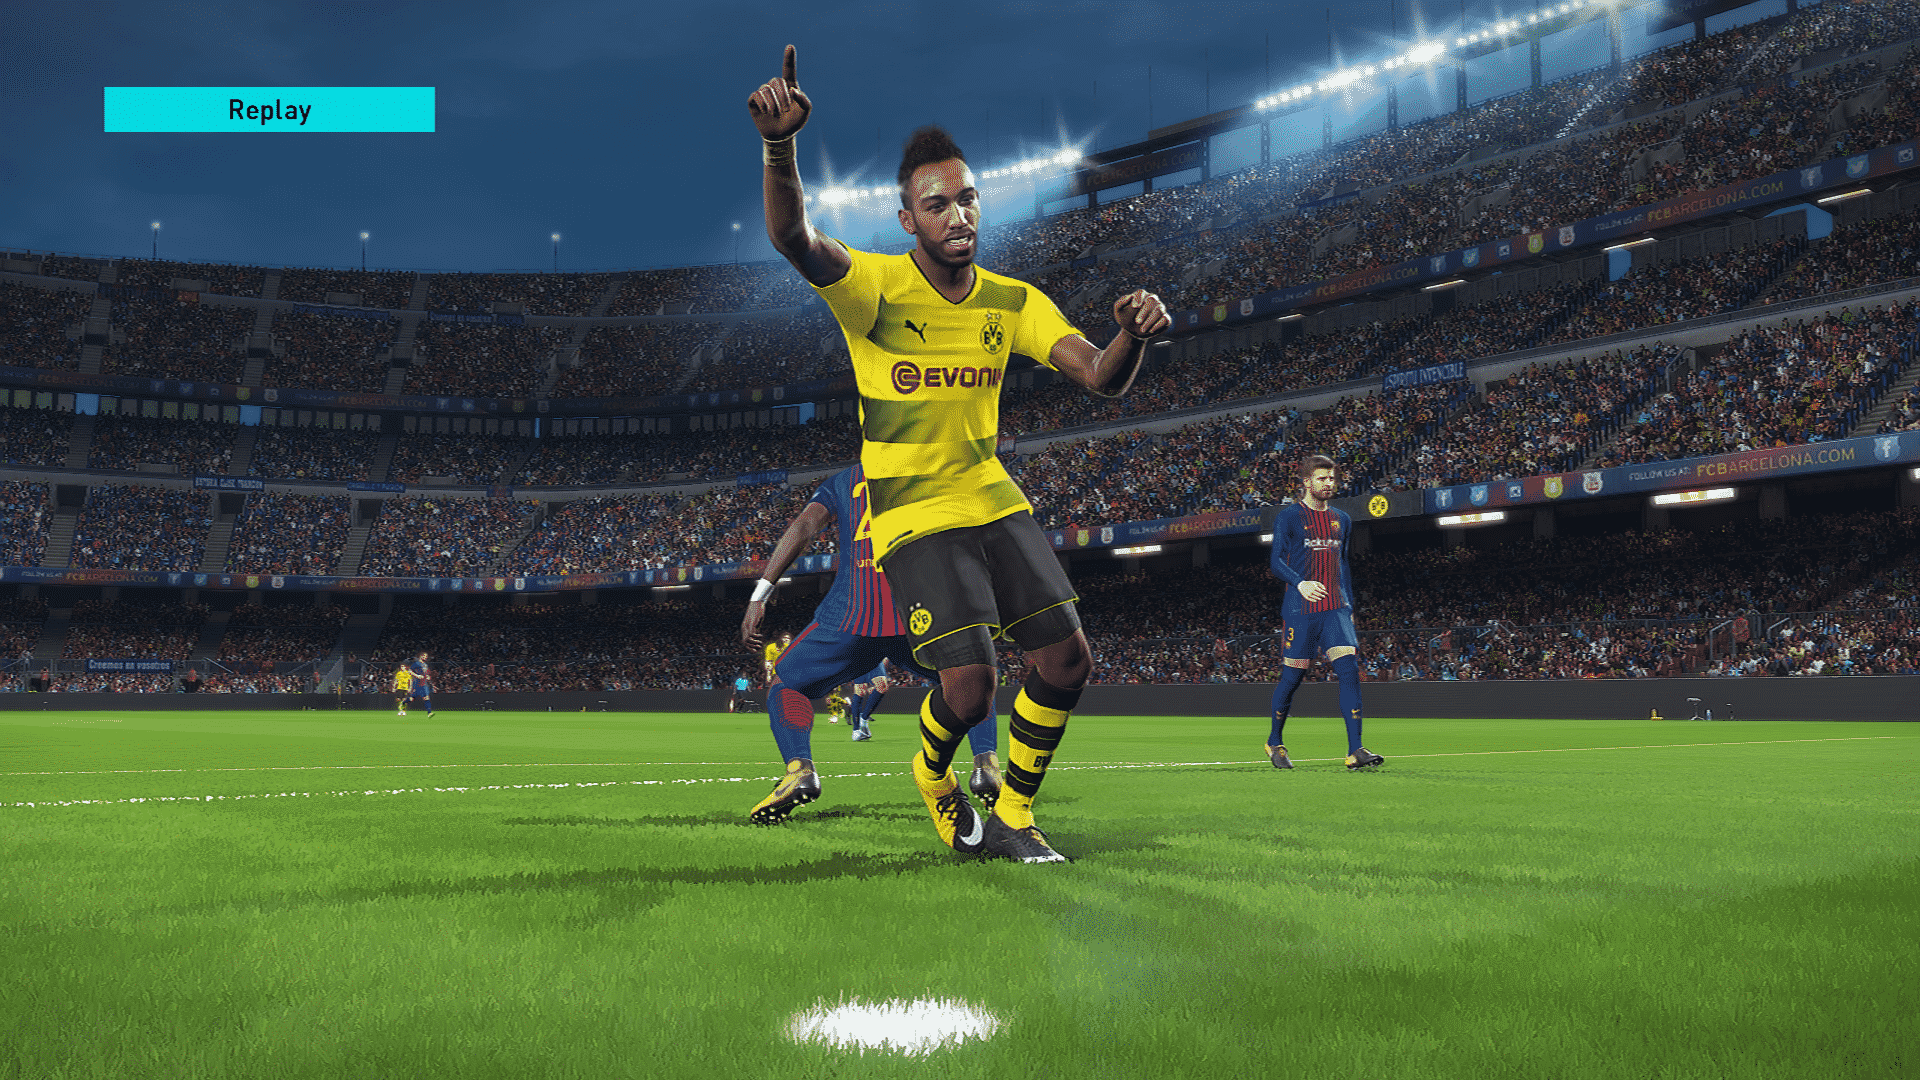 PES 2018 Demo: First Impressions - Sports Gamers Online